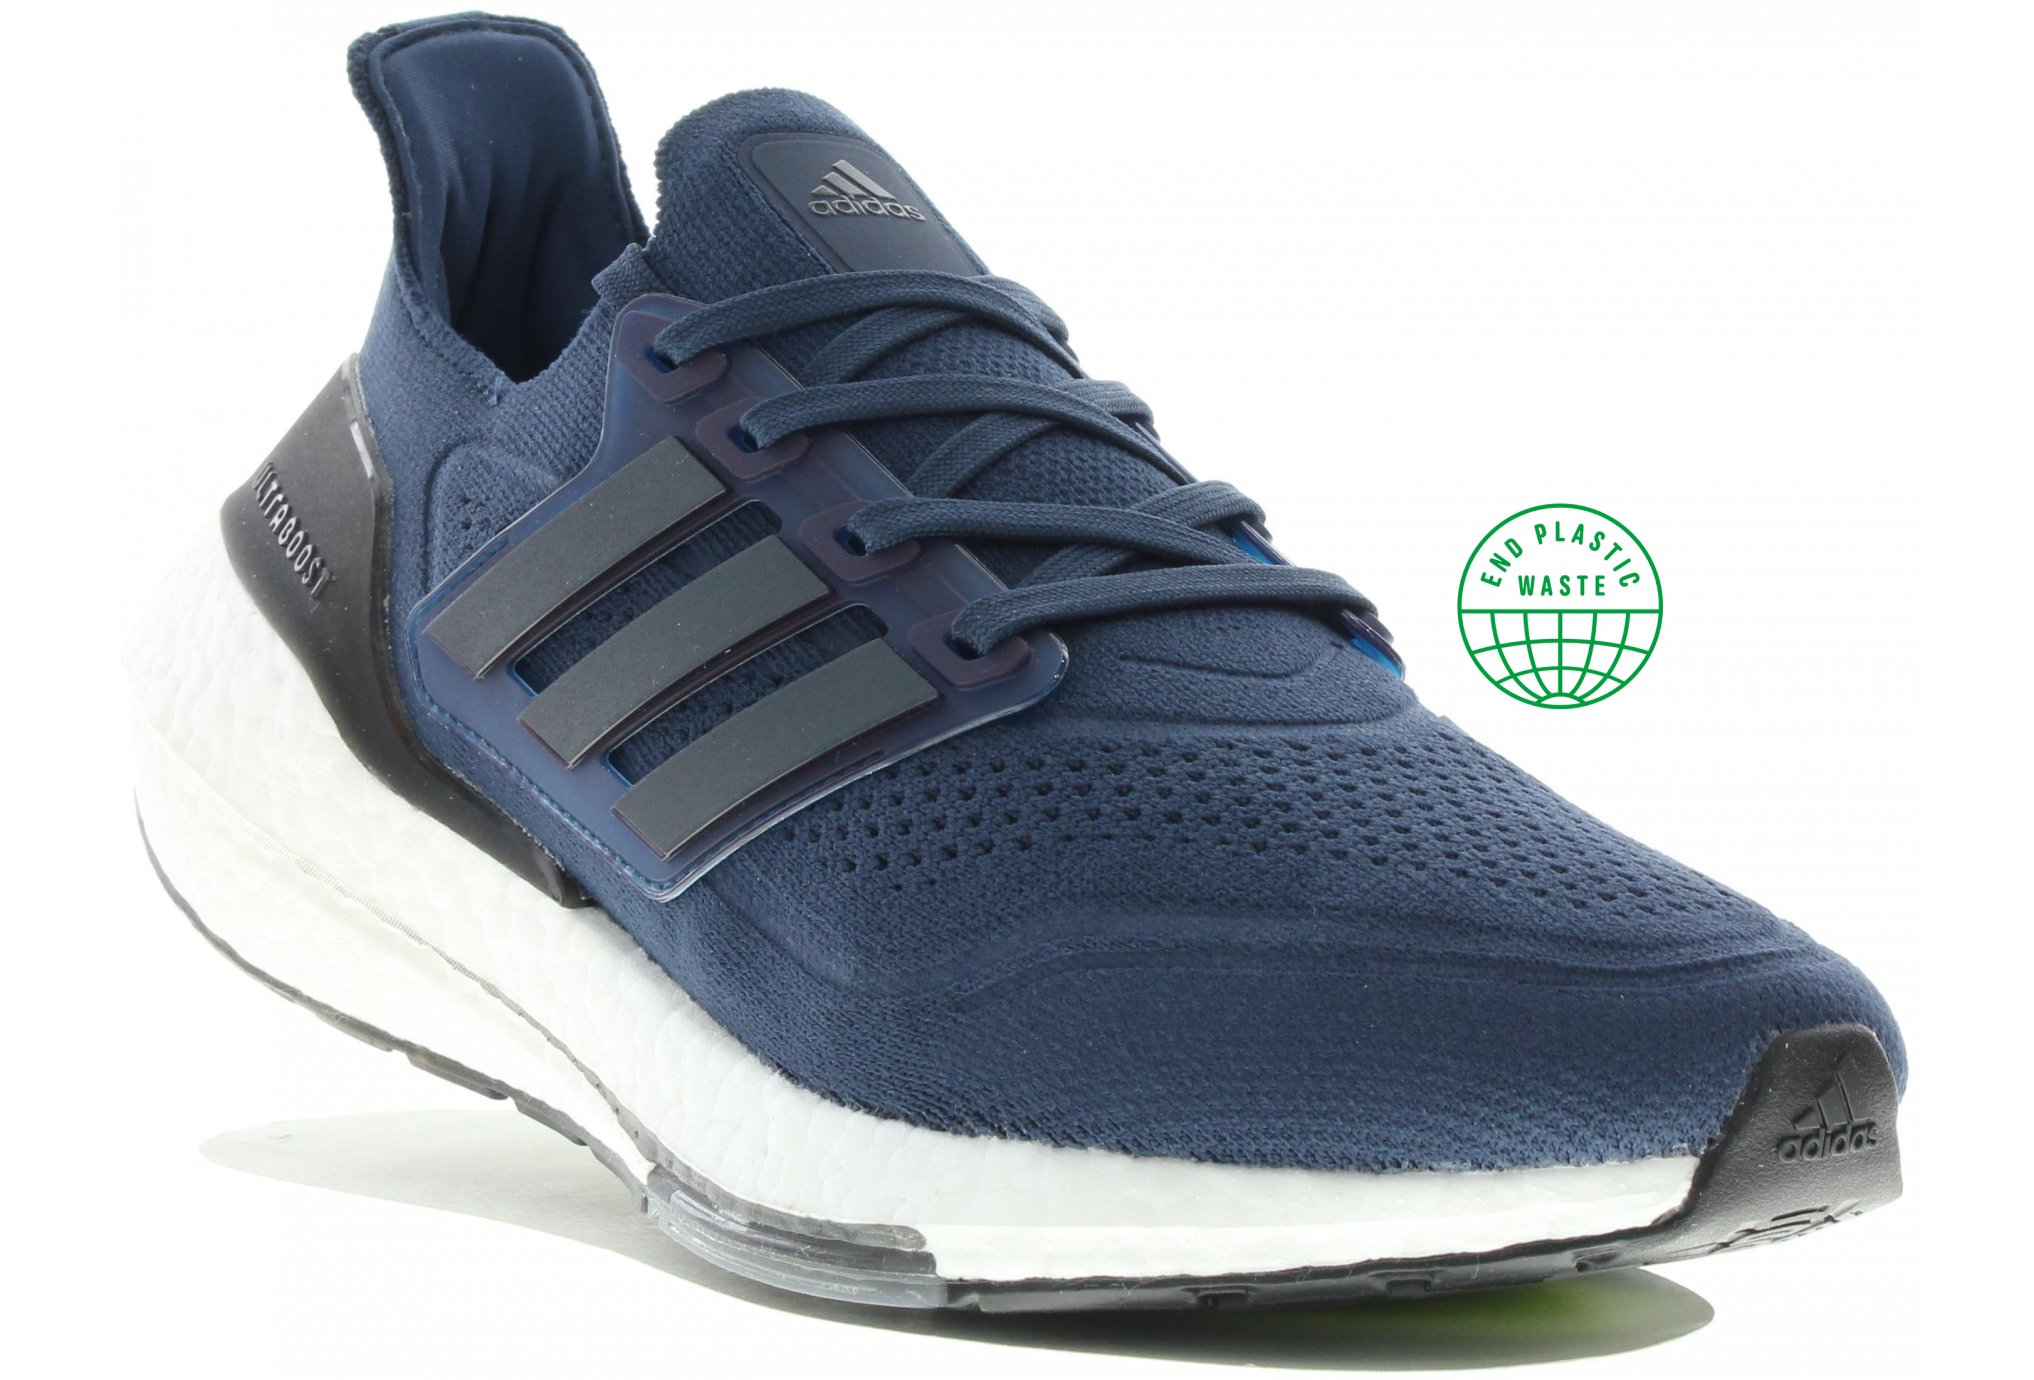 adidas UltraBOOST 21 Primeblue M Chaussures homme